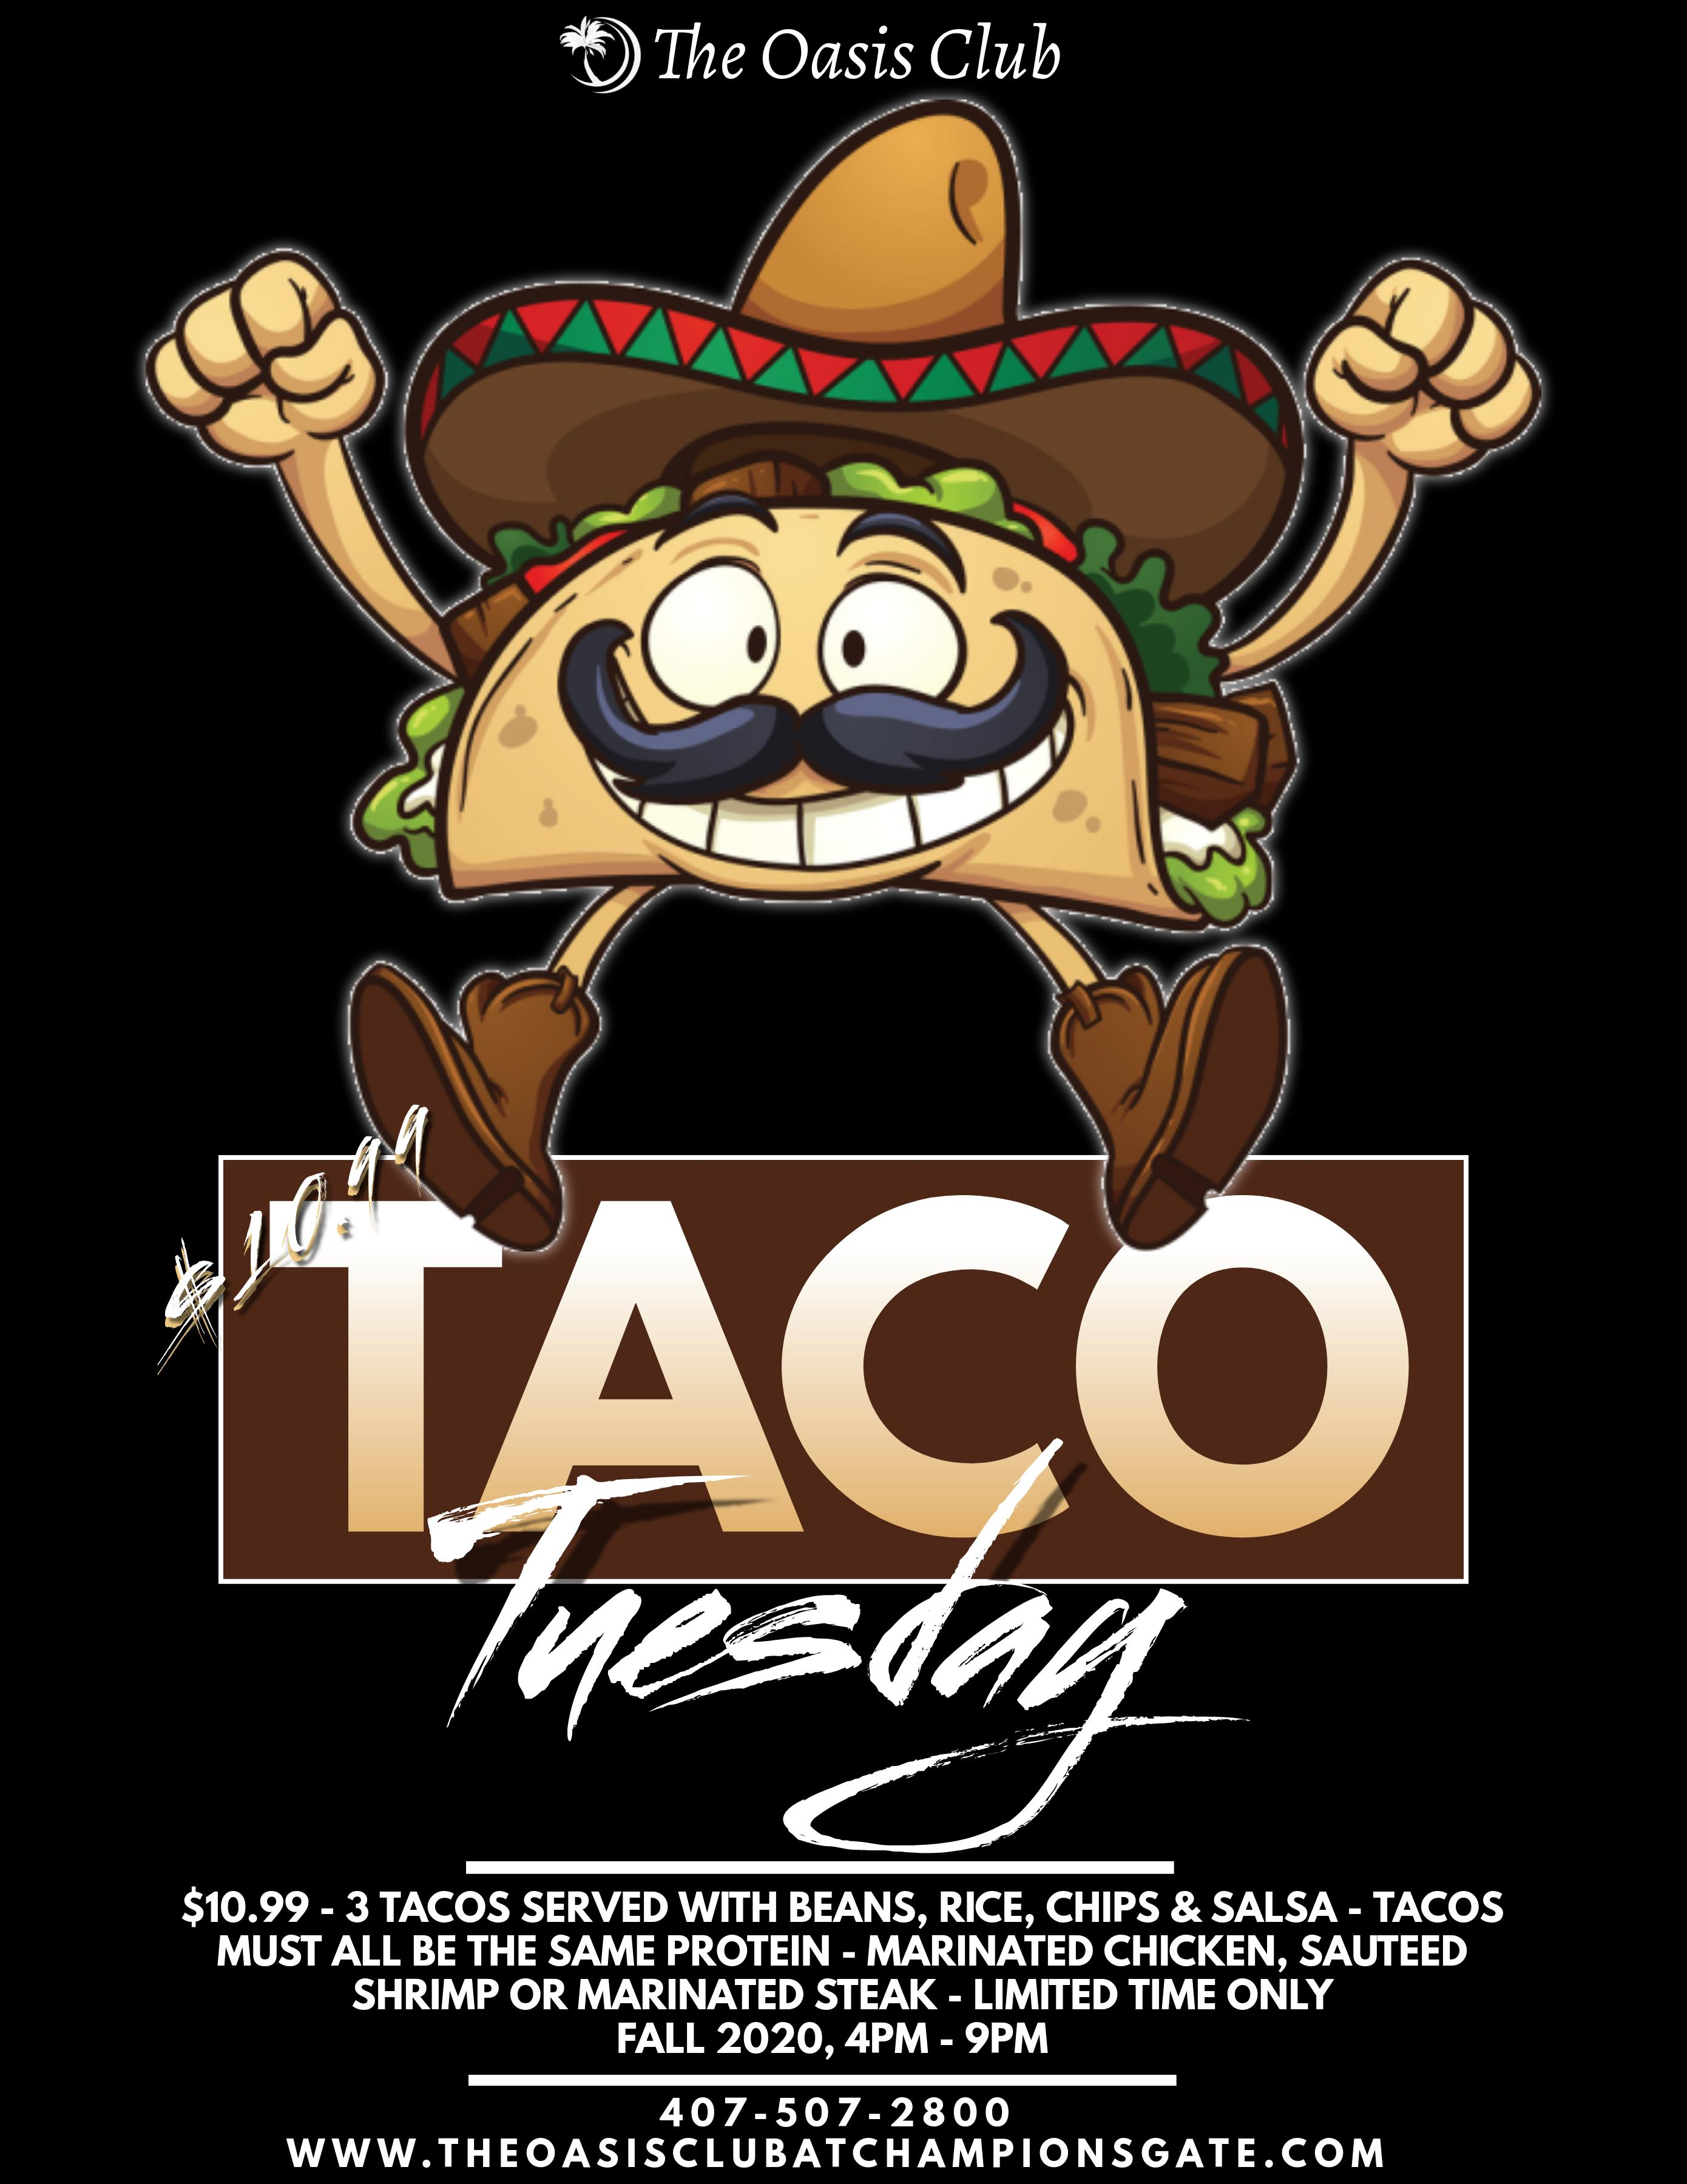 The Oasis Club Presents: Taco Tuesdays. $5 Margaritas, $10.00 any 3 tacos. 4pm-9pm January 2020. Served with beans, rice, chips, and salsa. Marinated chicken, Marinated Steak, & Sauteed Shrimp